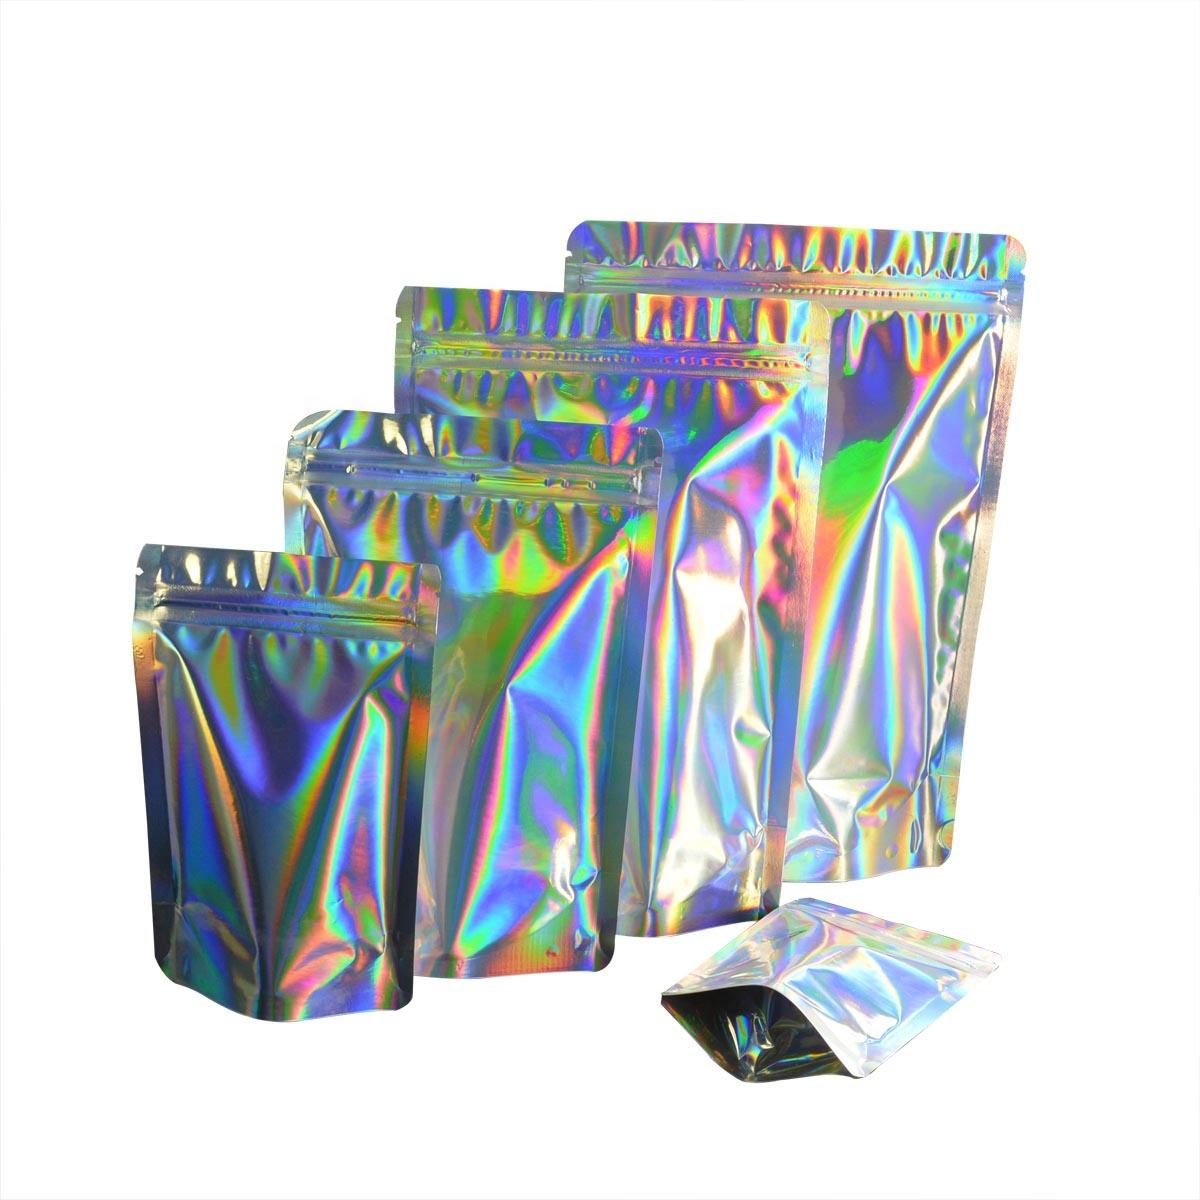 Holographic Resealable Smell Proof Bags Rainbow Holographic Stand Up Pouches for Food FDA Approved Stand Up Mylar Bags